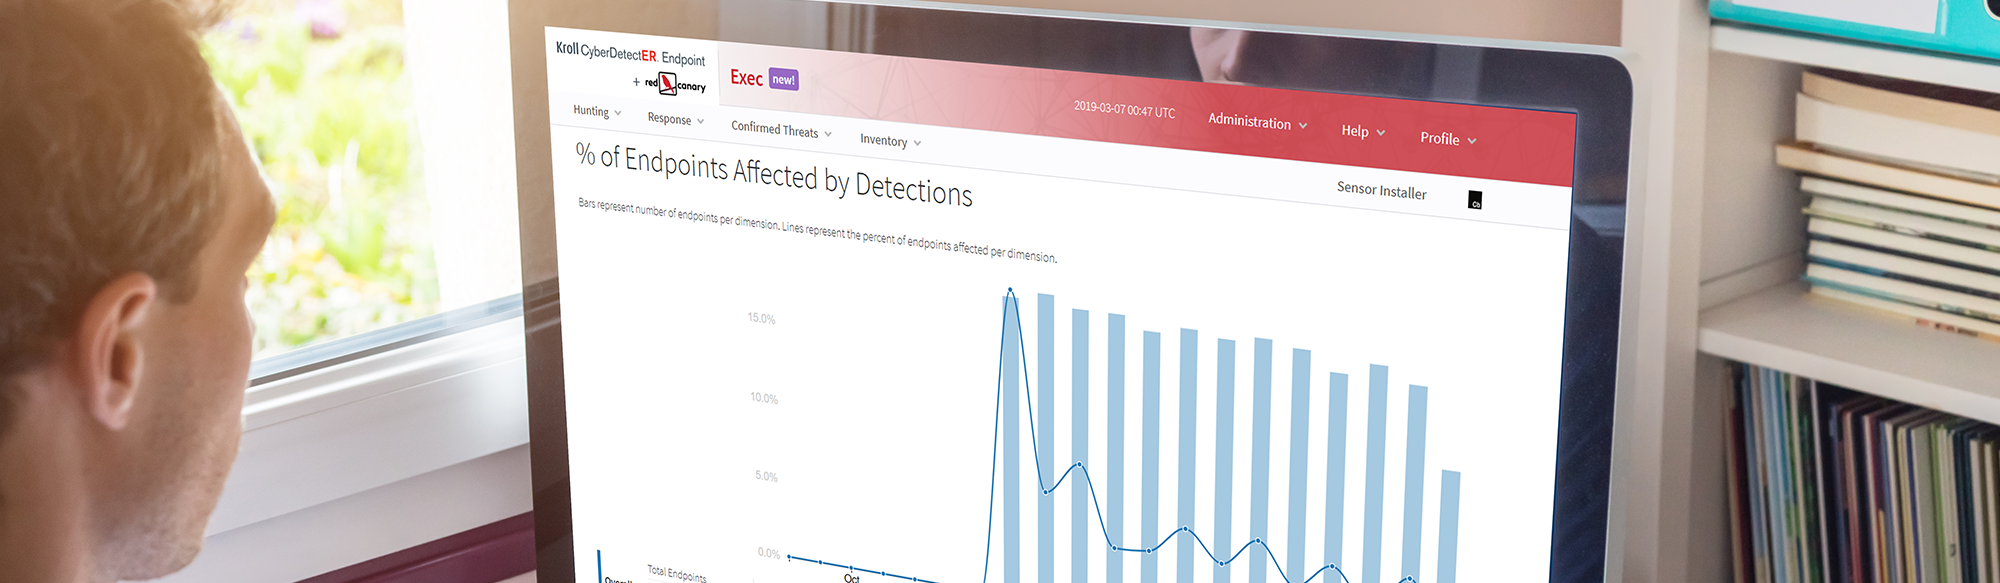 CyberDetectER Endpoint